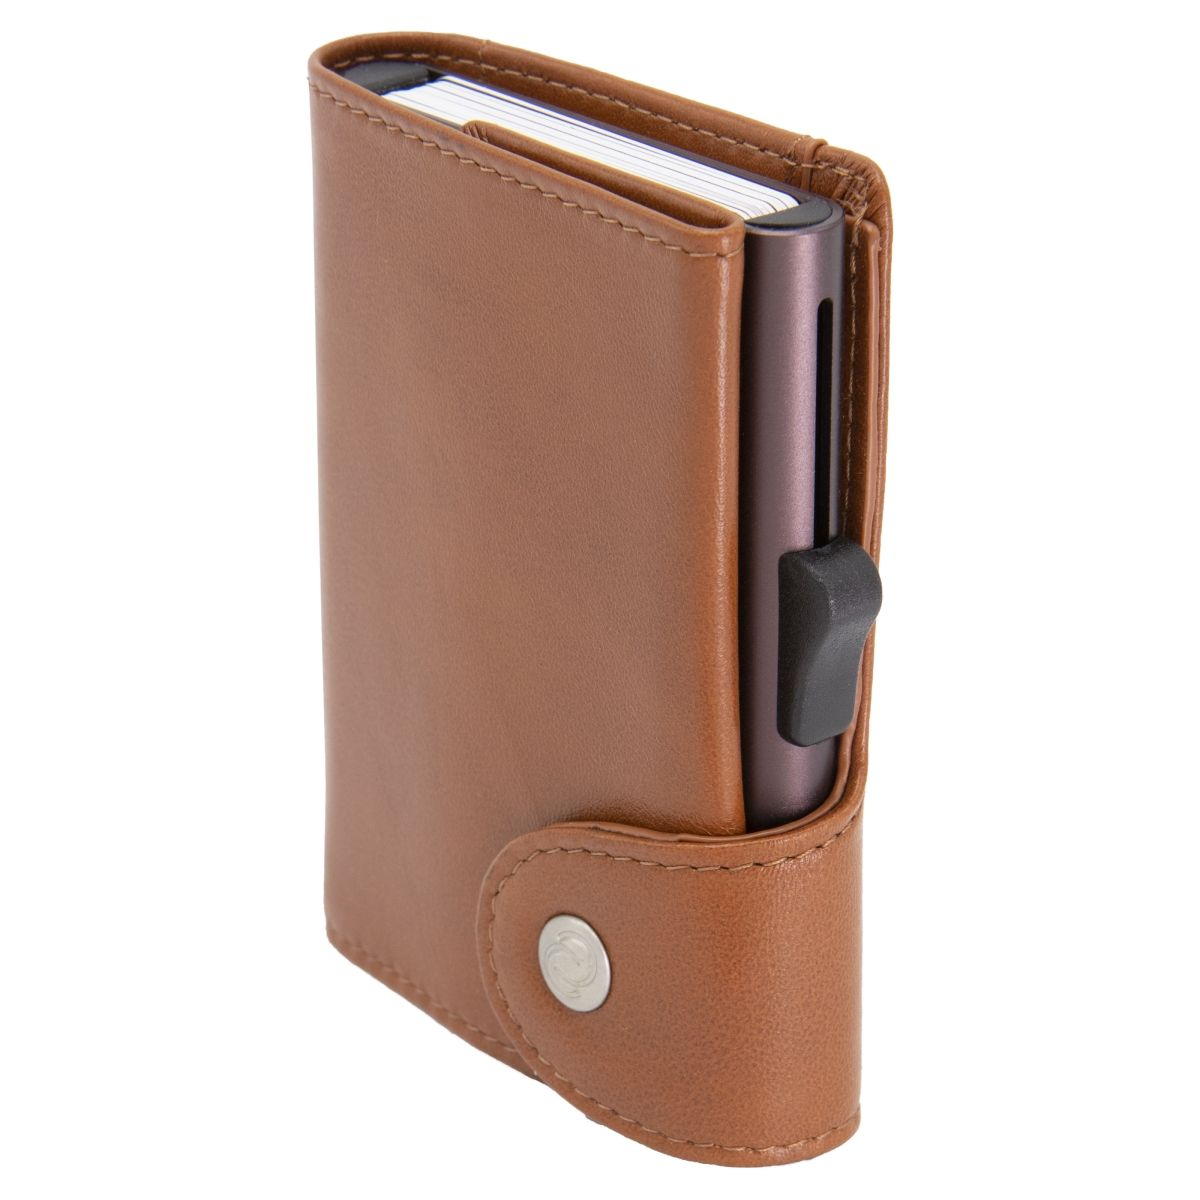 C-Secure XL Aluminum Wallet with Vegetable Genuine Leather - Chestnut Brown